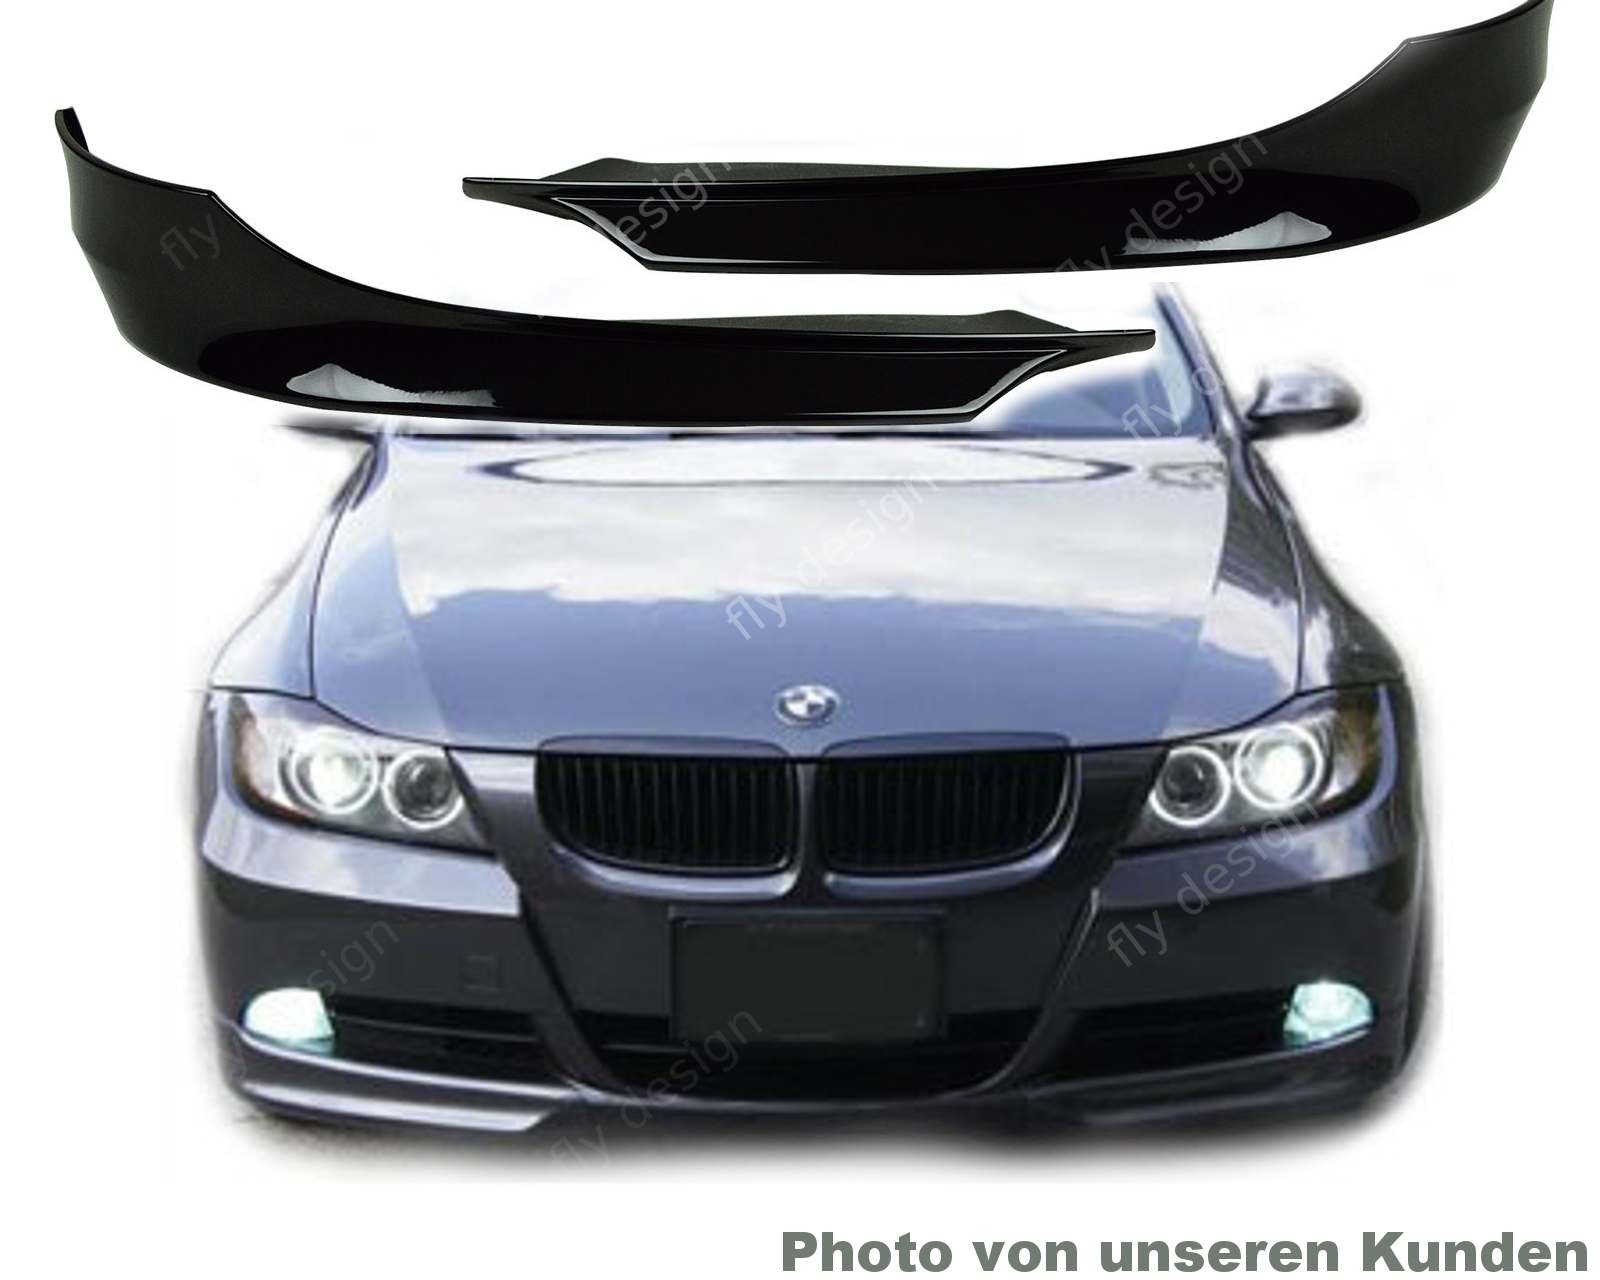 bmw e91 e90 08 11 tuning frontspoiler front lippe splitter. Black Bedroom Furniture Sets. Home Design Ideas